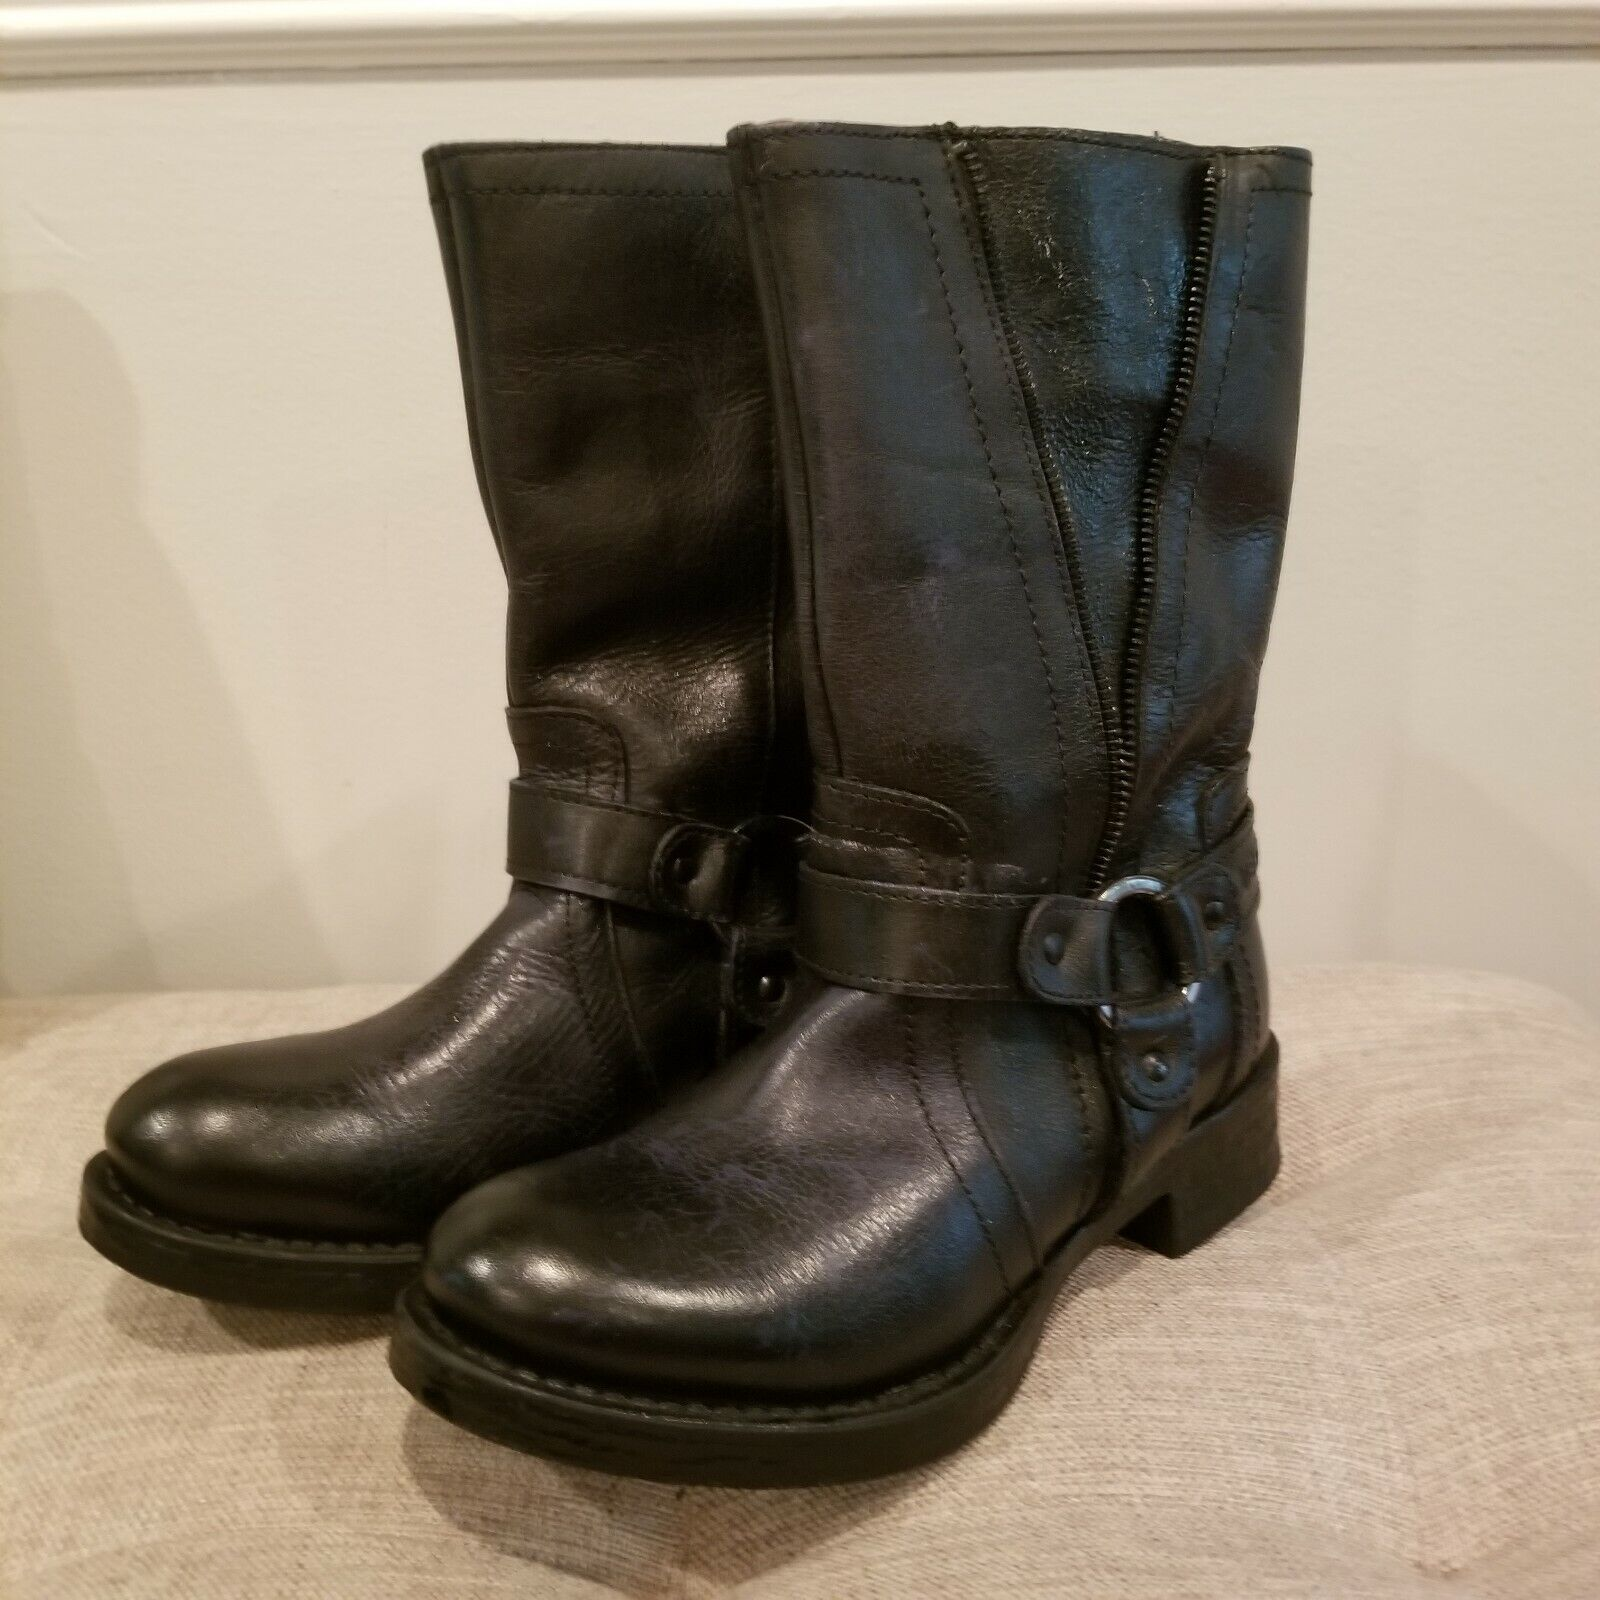 Liberto Short Black Motorcycle Engineer Boots Leather Sz. 6 Womens Portugal